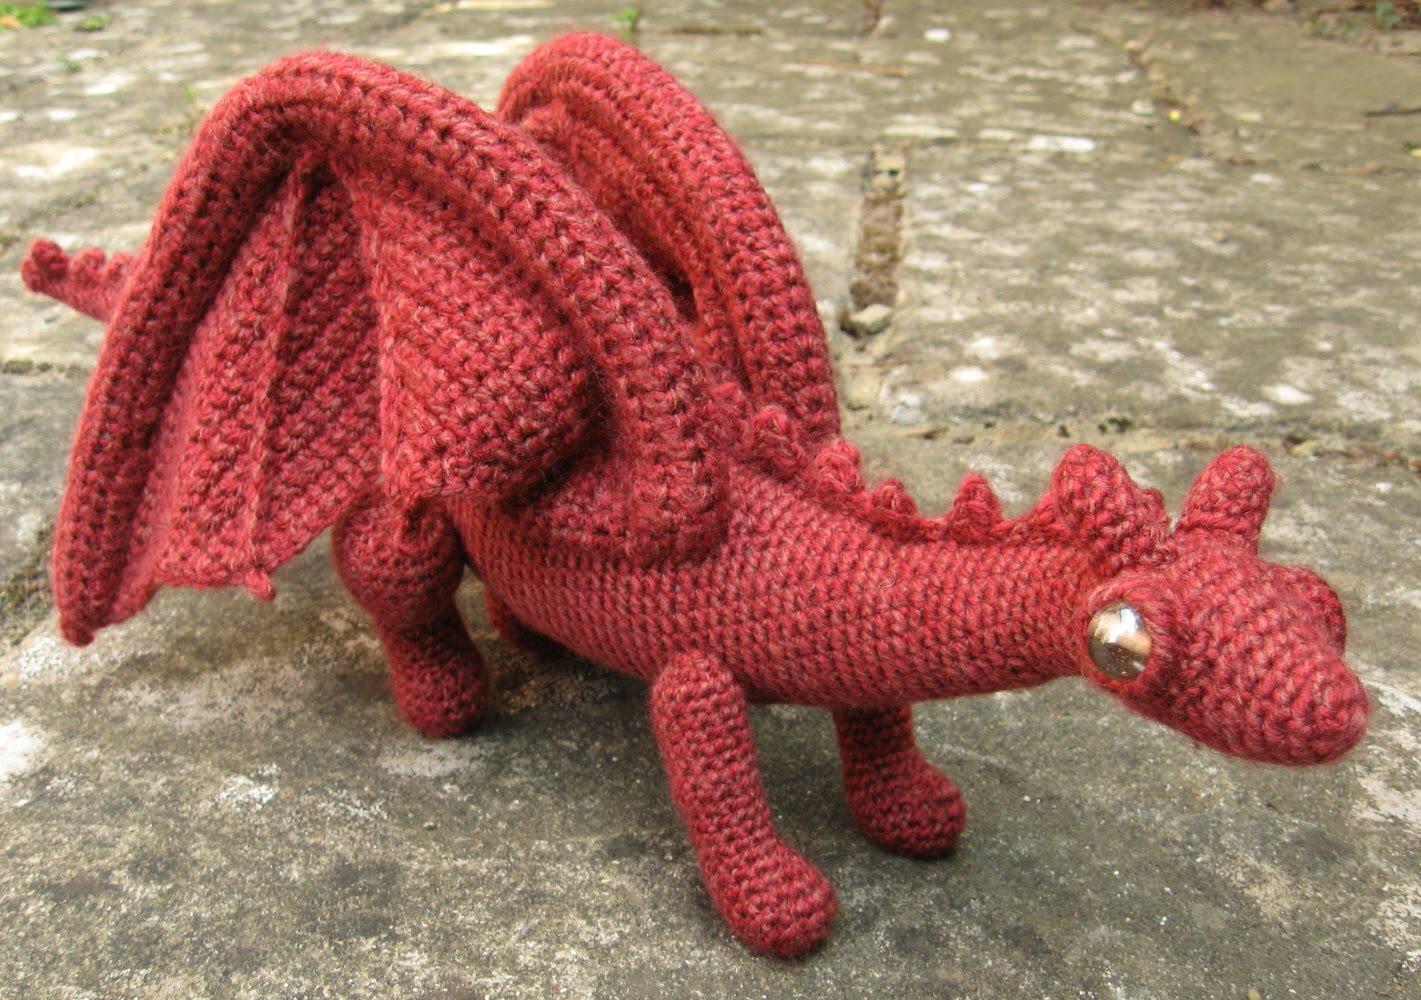 Crochet Dragon : LucyRavenscar - Crochet Creatures: Dragonet Pattern